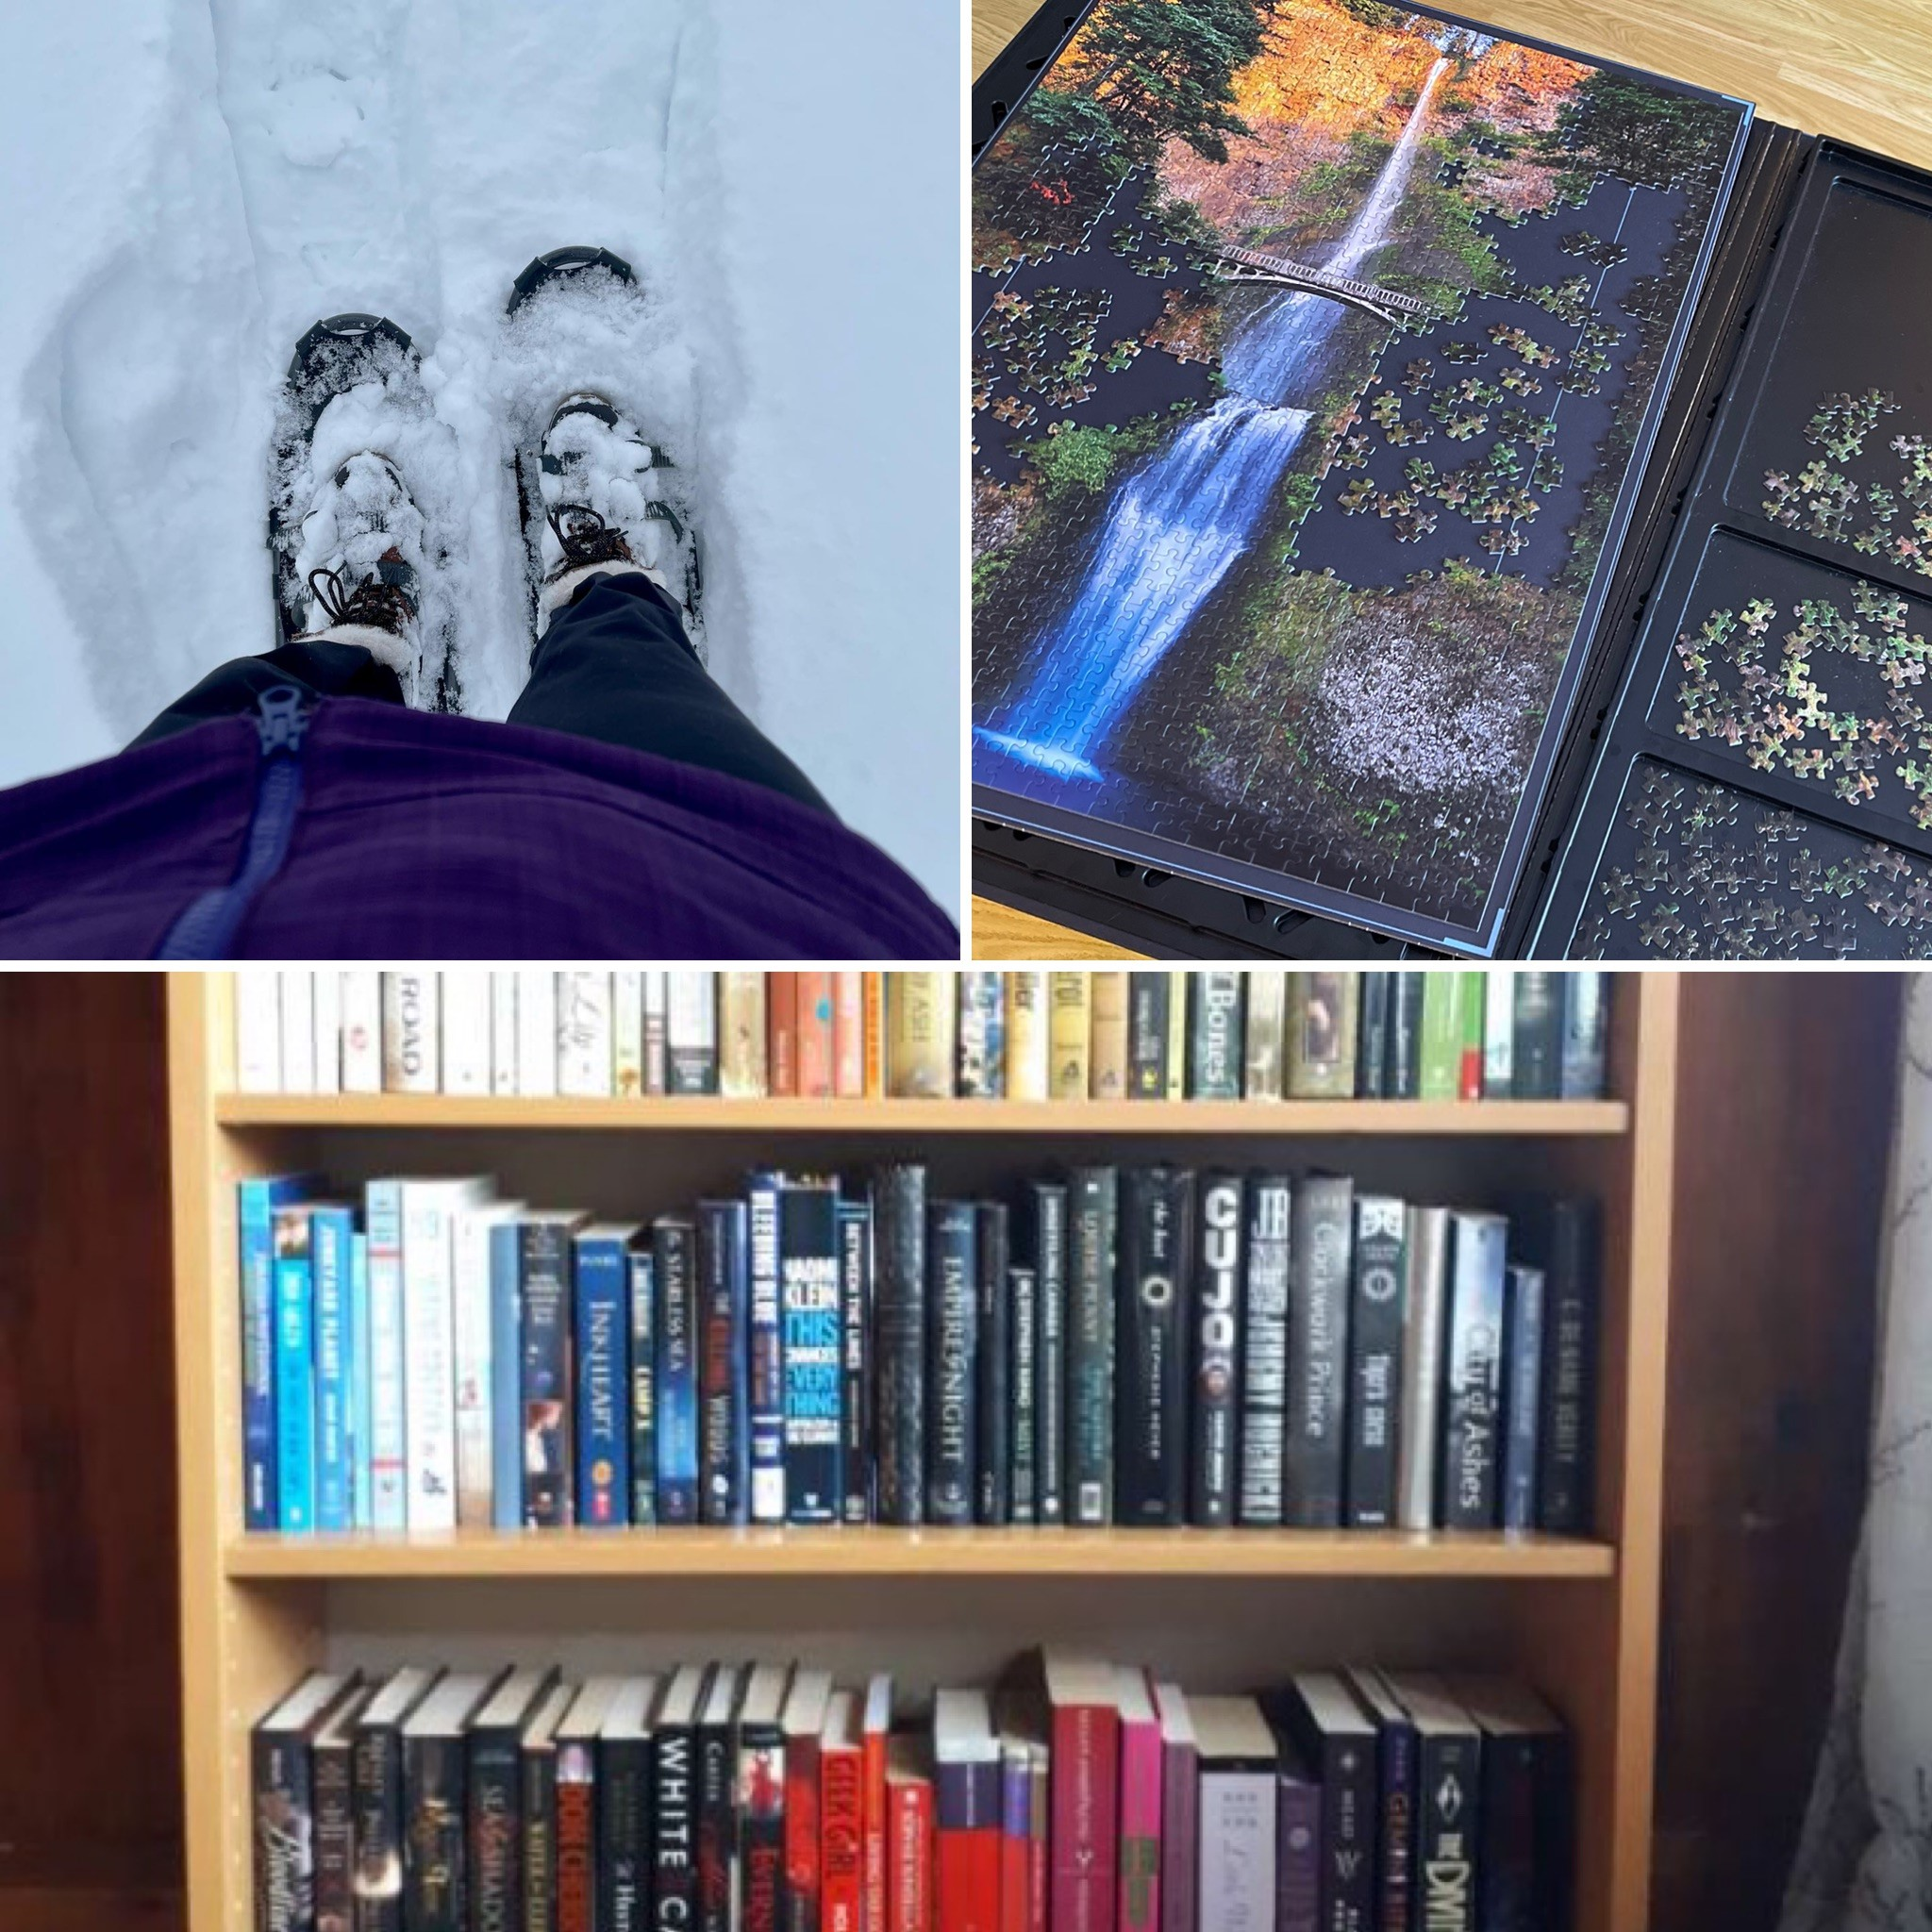 Showshoes, books, and a puzzle